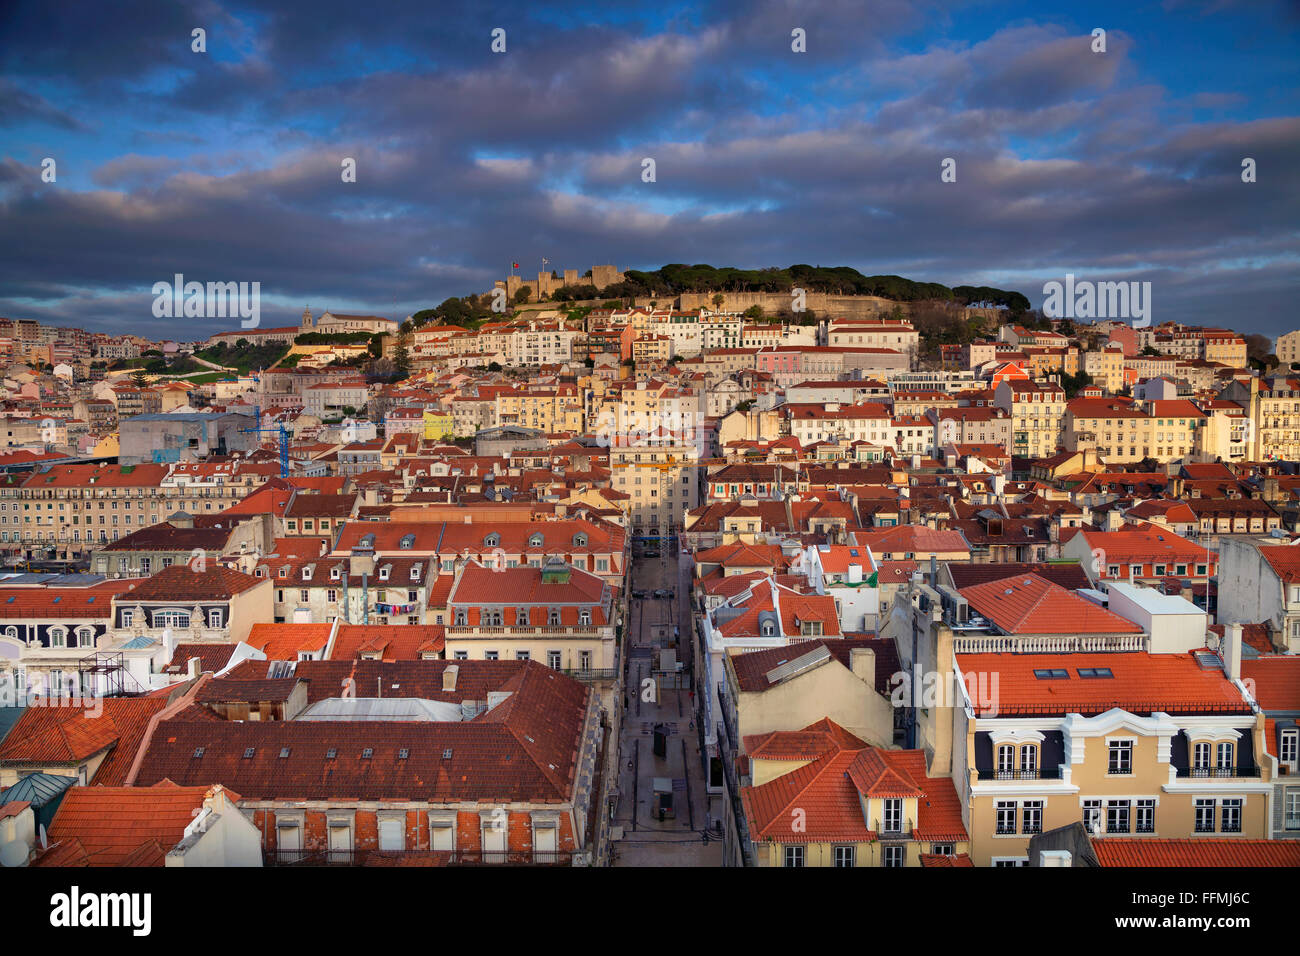 Lisbon. Image of Lisbon, Portugal during golden hour. Stock Photo